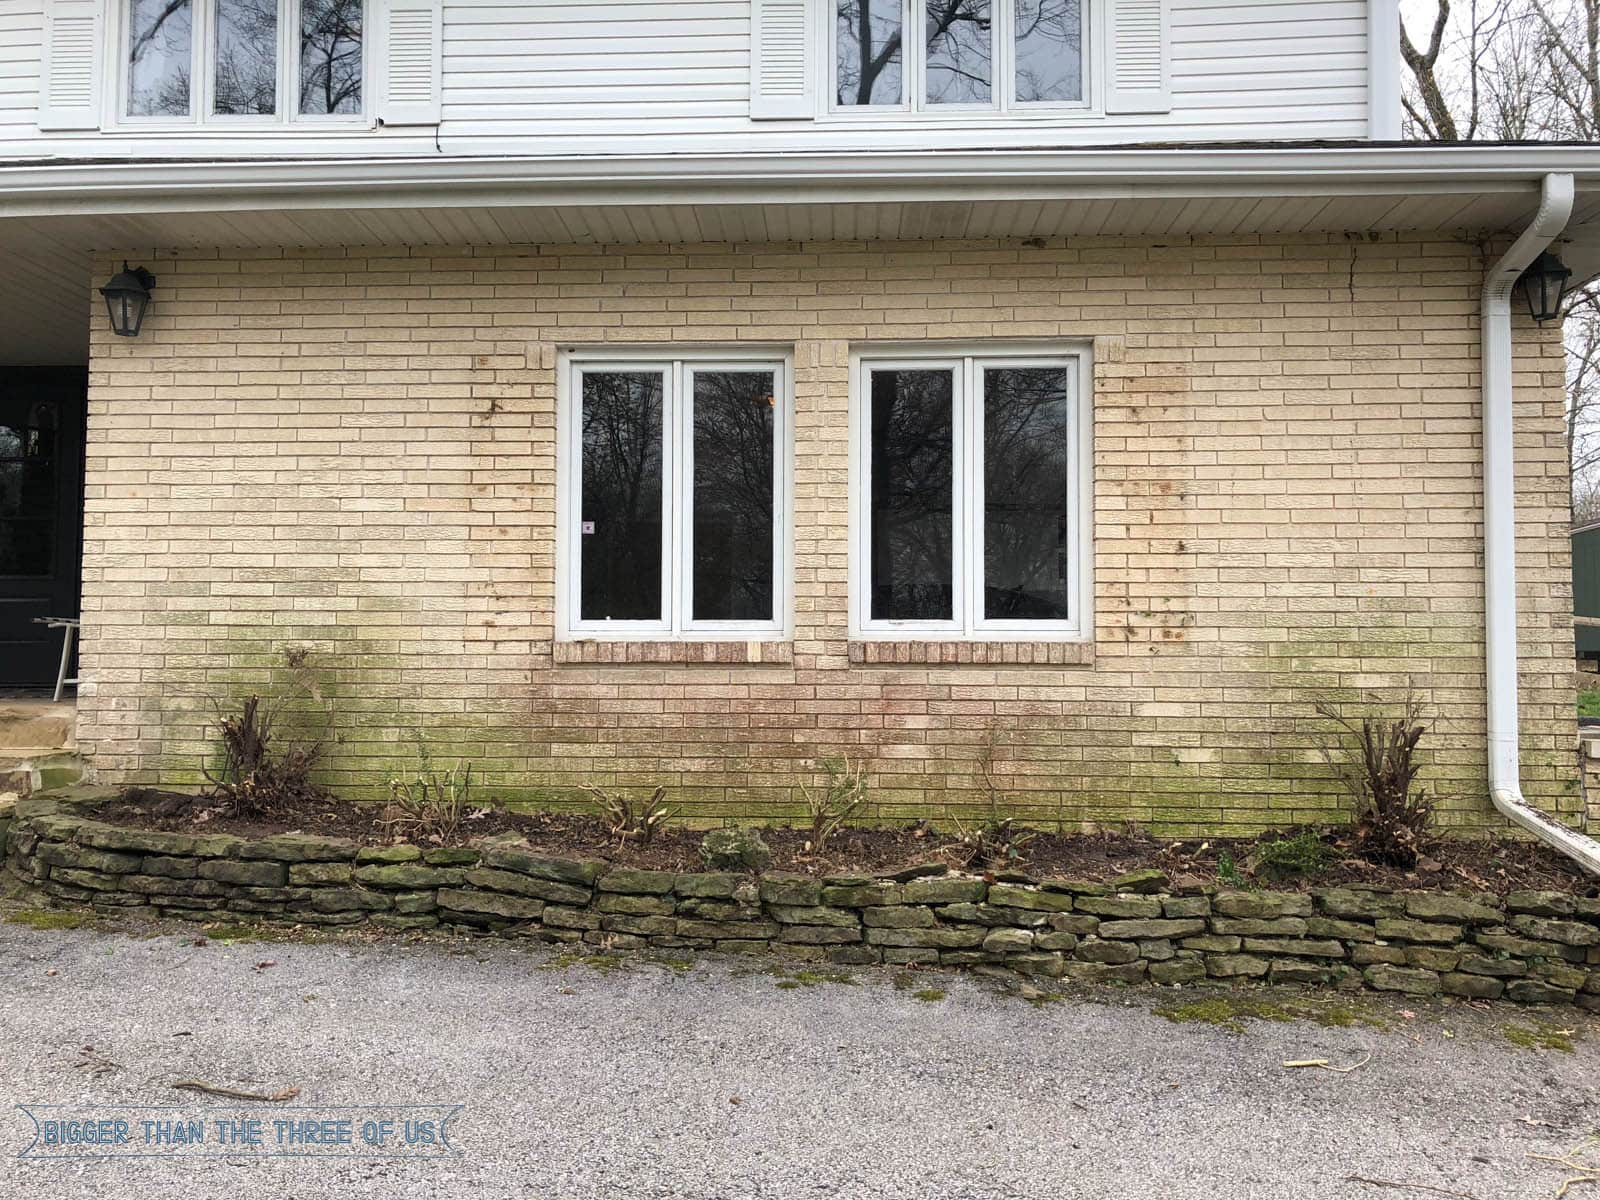 Have you ever thought about how much improvement you can make on the exterior of your home by trimming overgrown boxwood bushes back? Seriously, it's a game changer over here. Come over and see the process of trimming big boxwoods and how the shutter removal before and after. #exterior #beforeandafter #shutterremoval